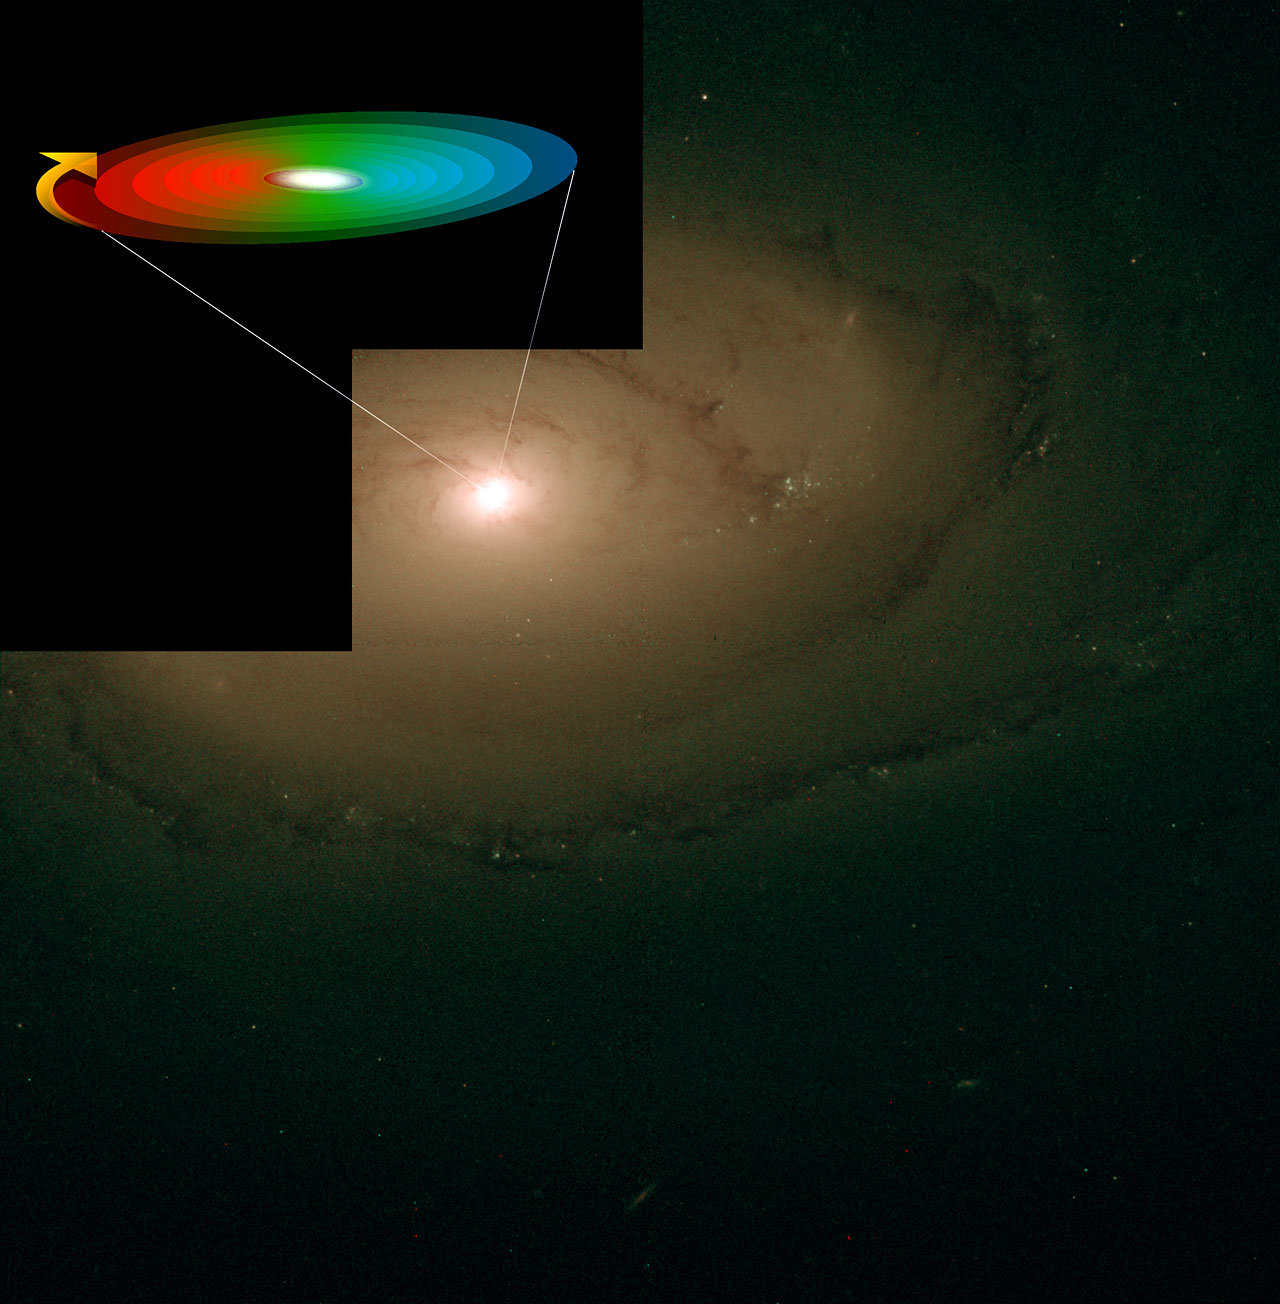 Swirling Gas Disk around Black Hole in Galaxy NGC 4450